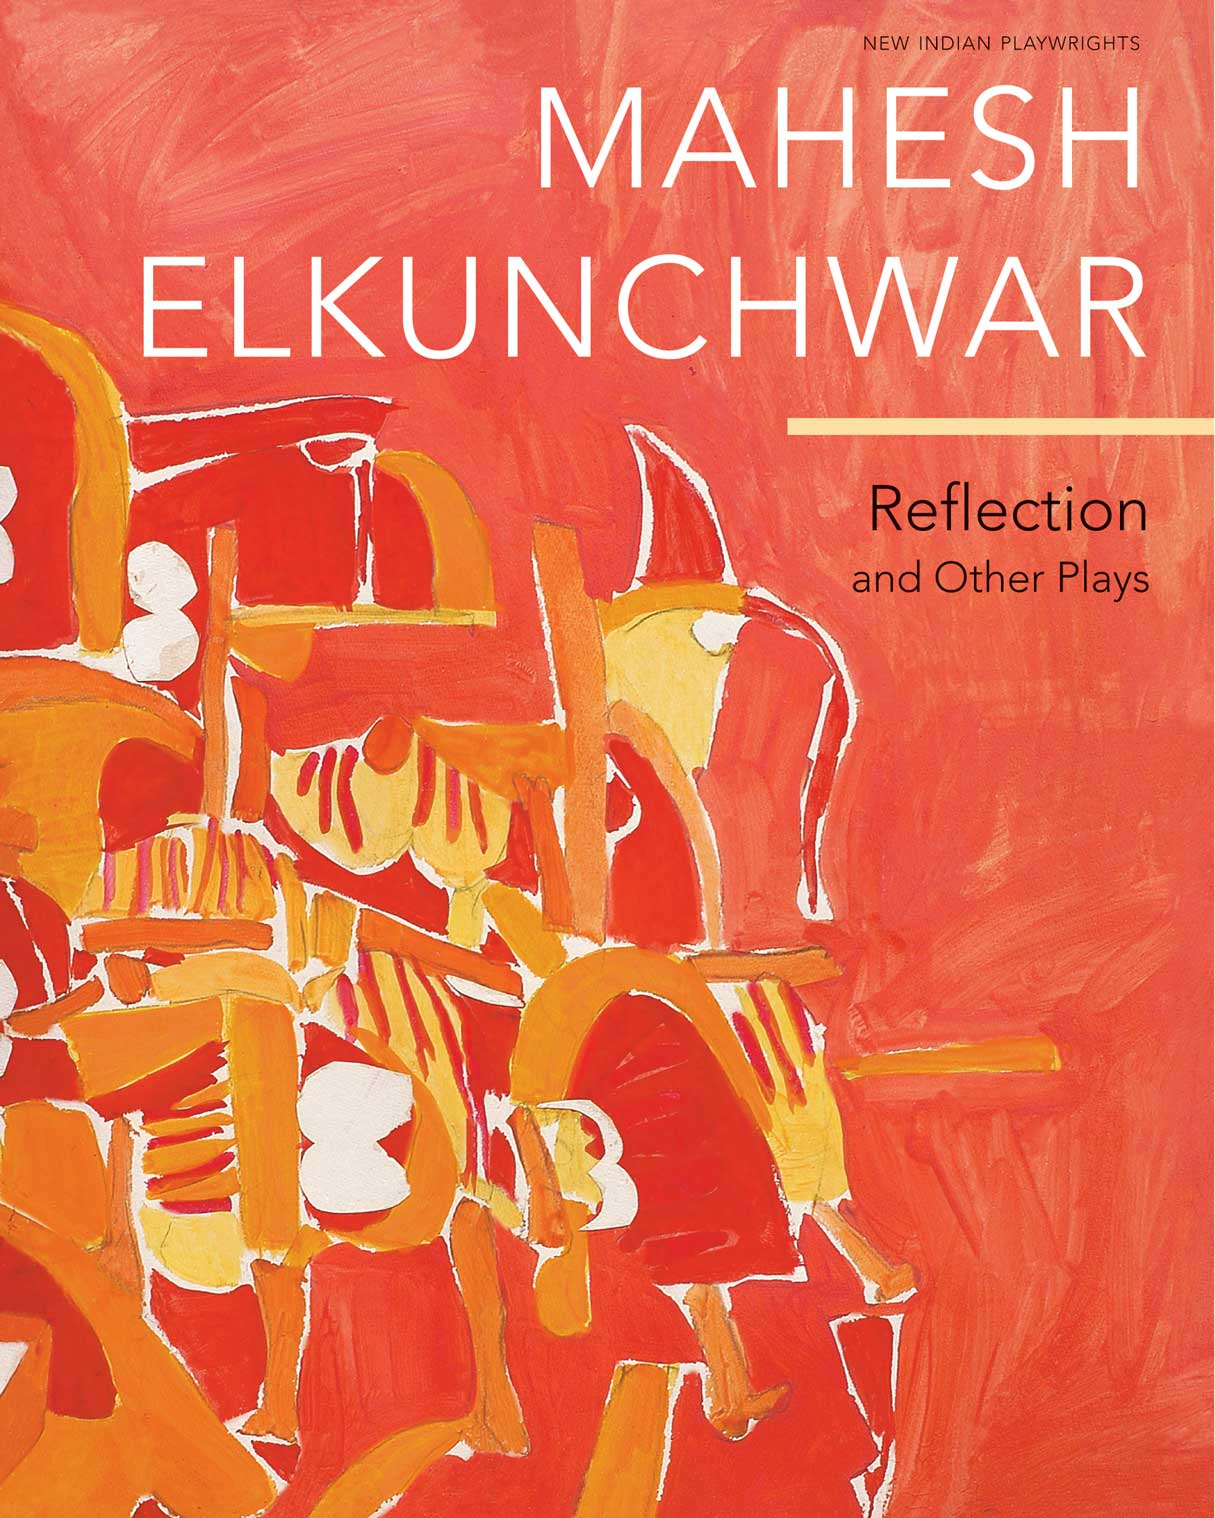 Reflection and Other Plays by Mahesh Elkunchwar | Seagull Books